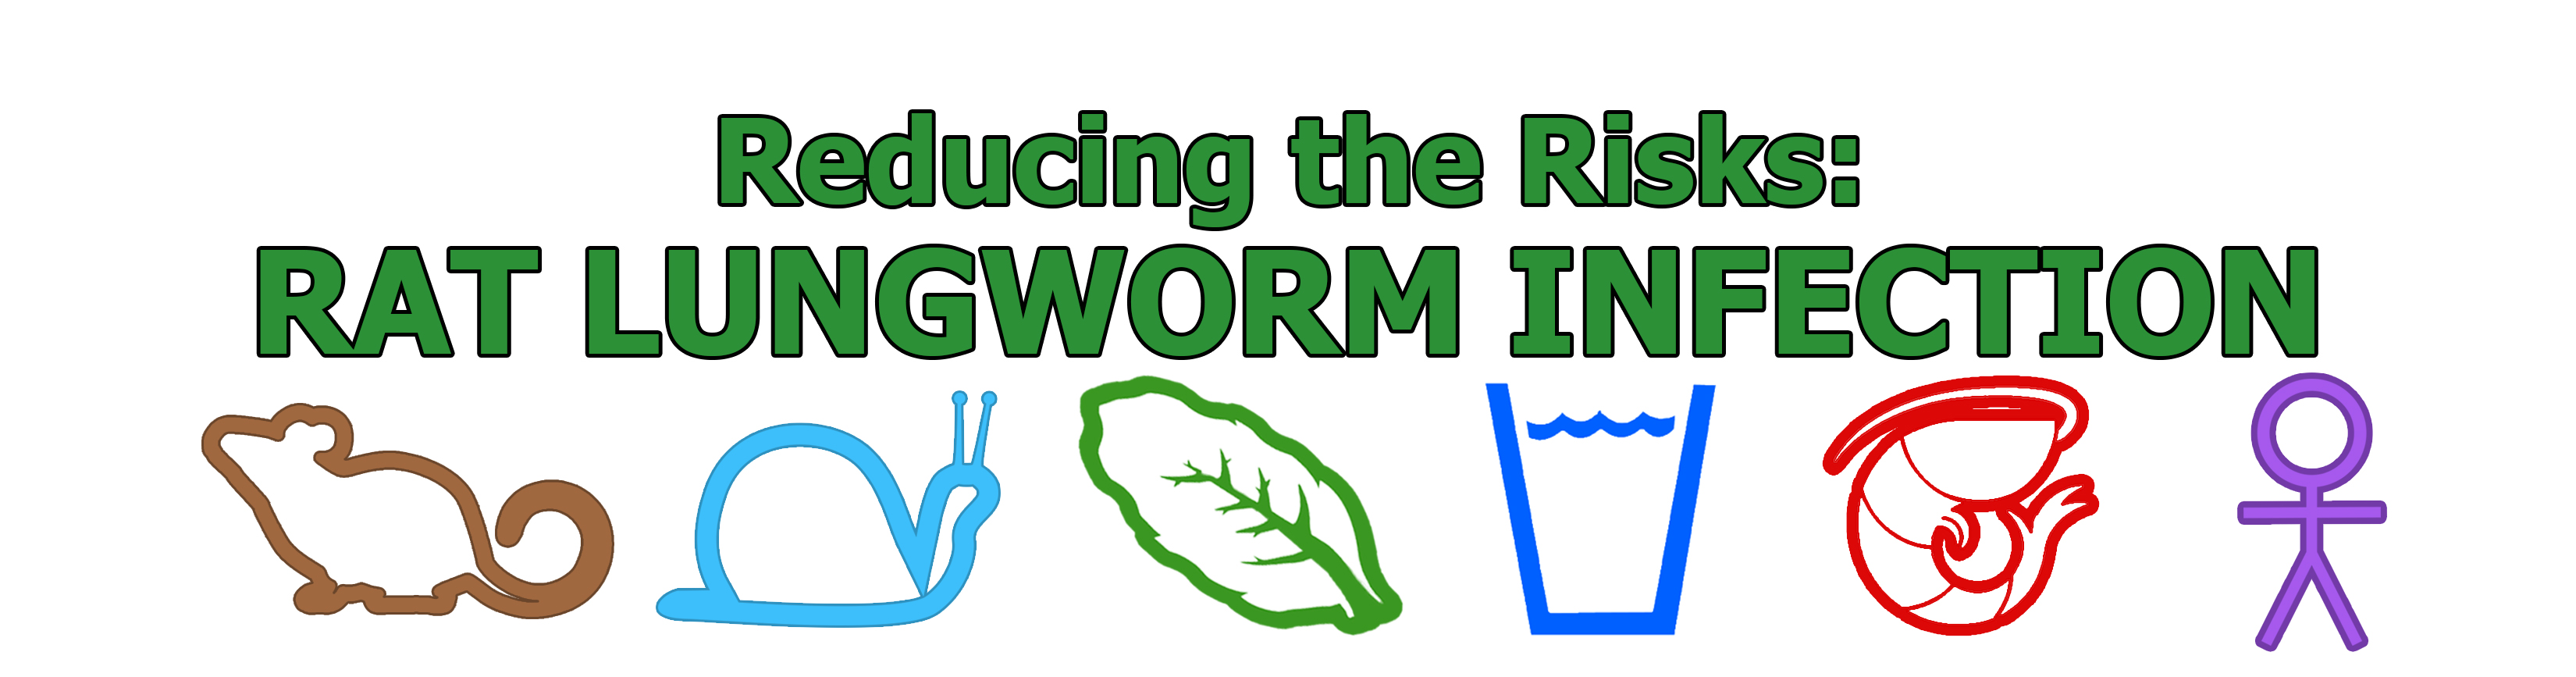 rat lungworm infection